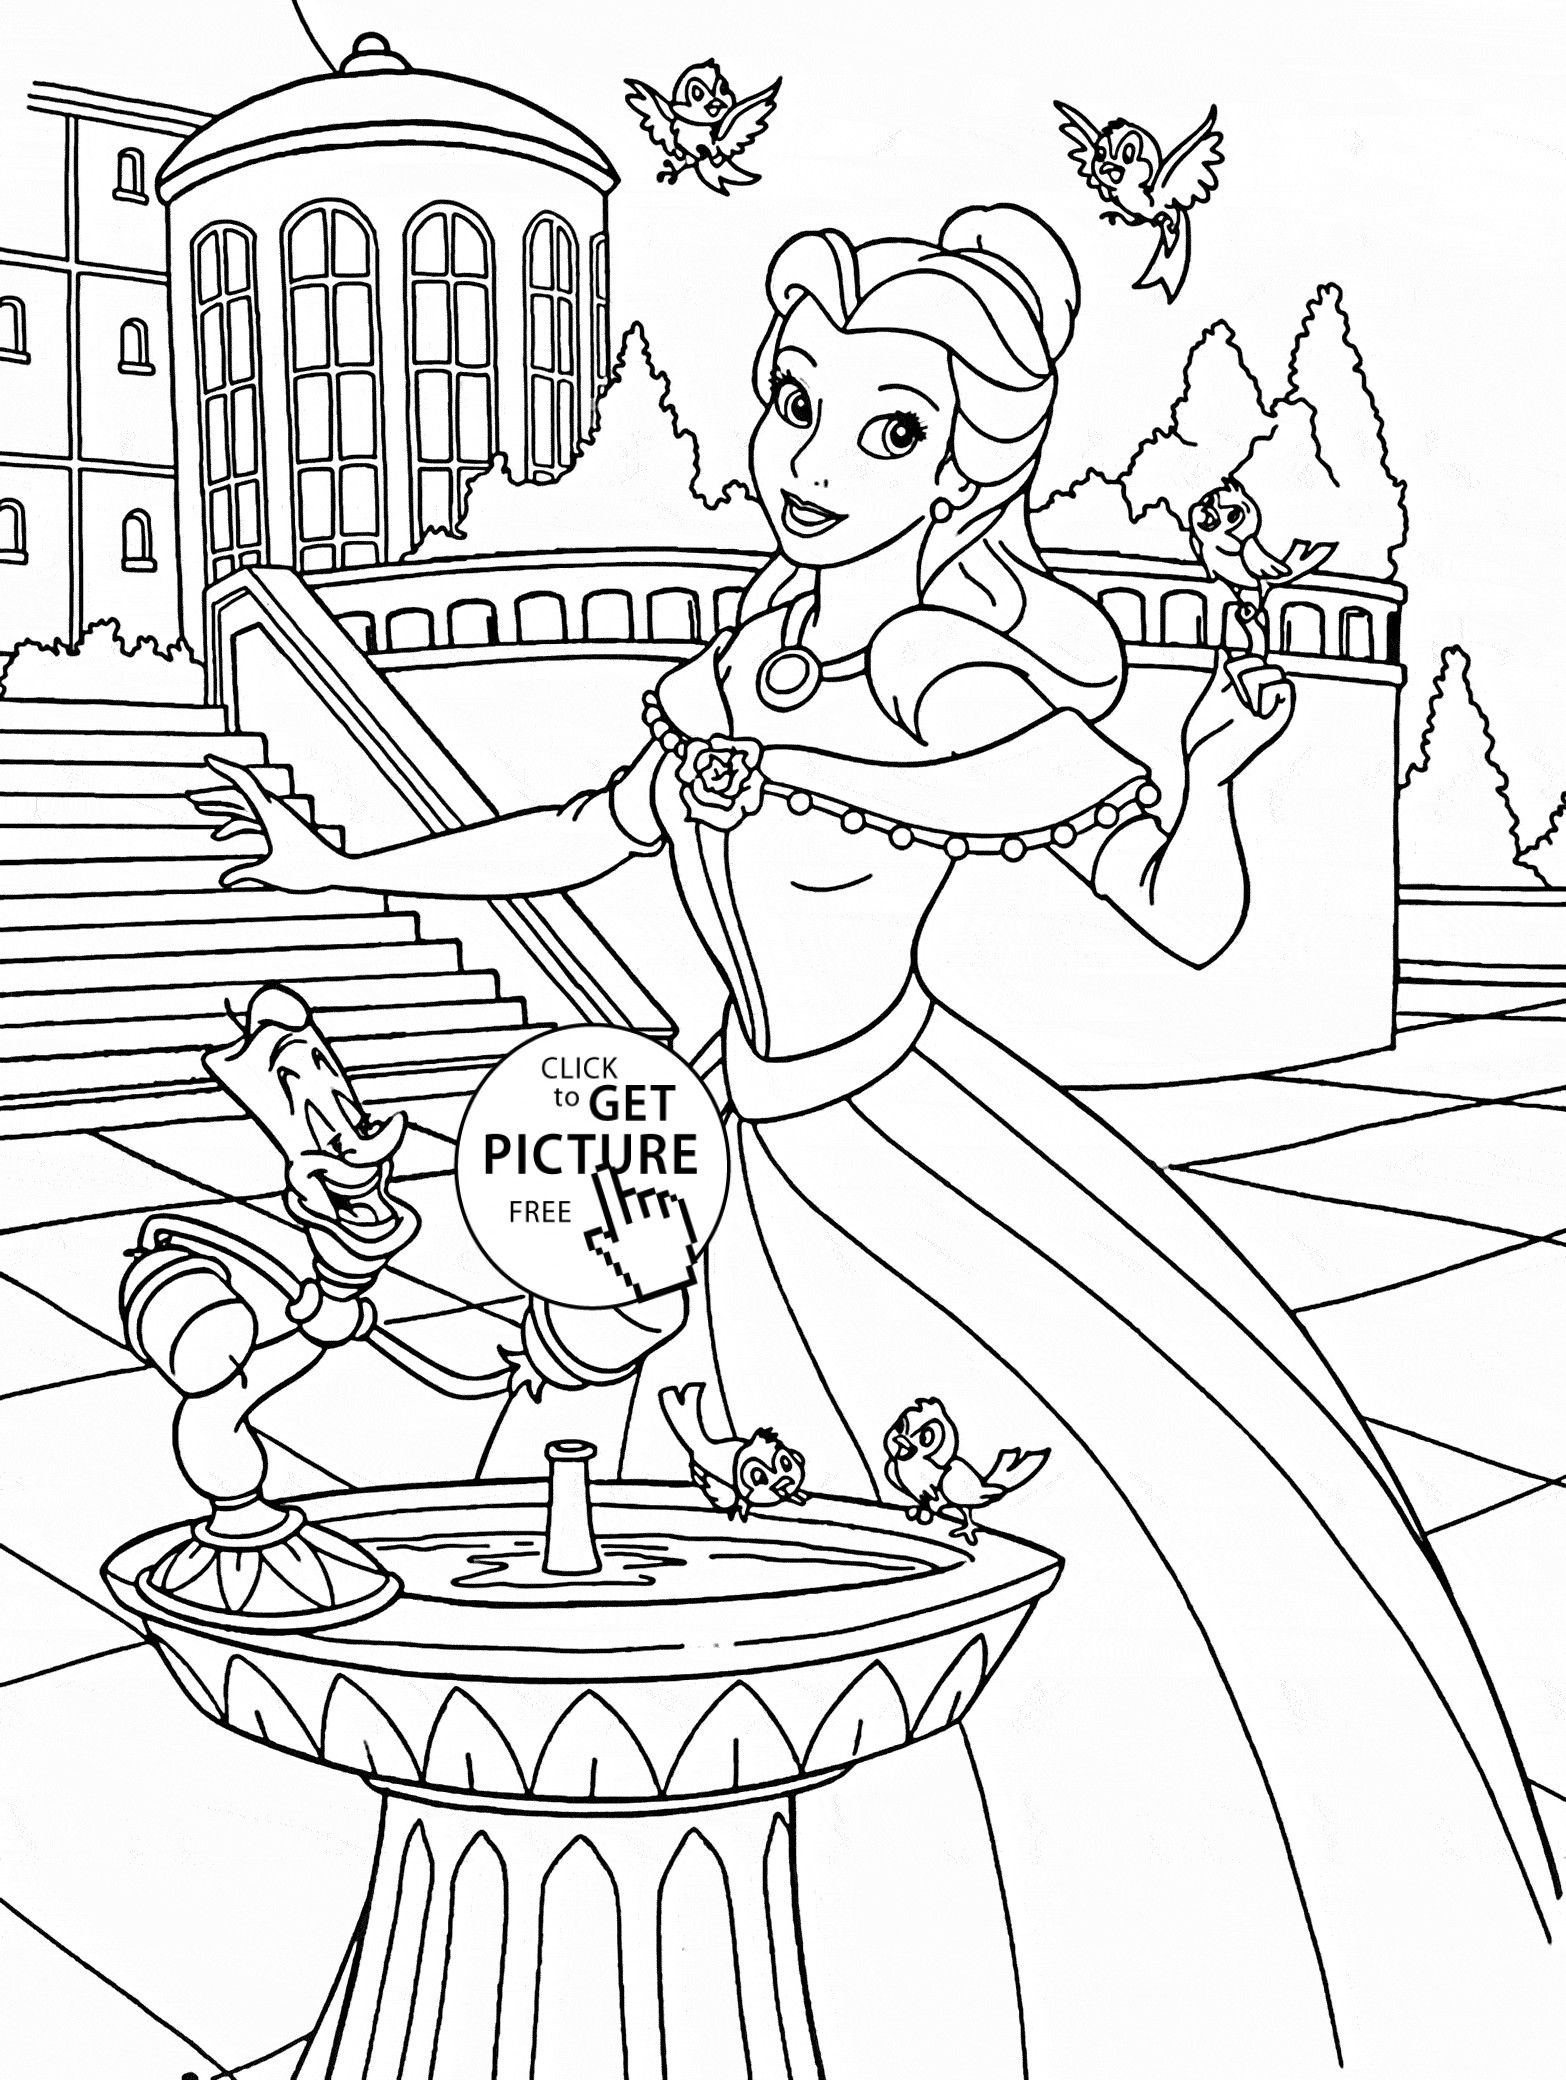 Castle With Princess Coloring Pages Through The Thousands Of Photographs On The Disney Princess Coloring Pages Unicorn Coloring Pages Princess Coloring Pages